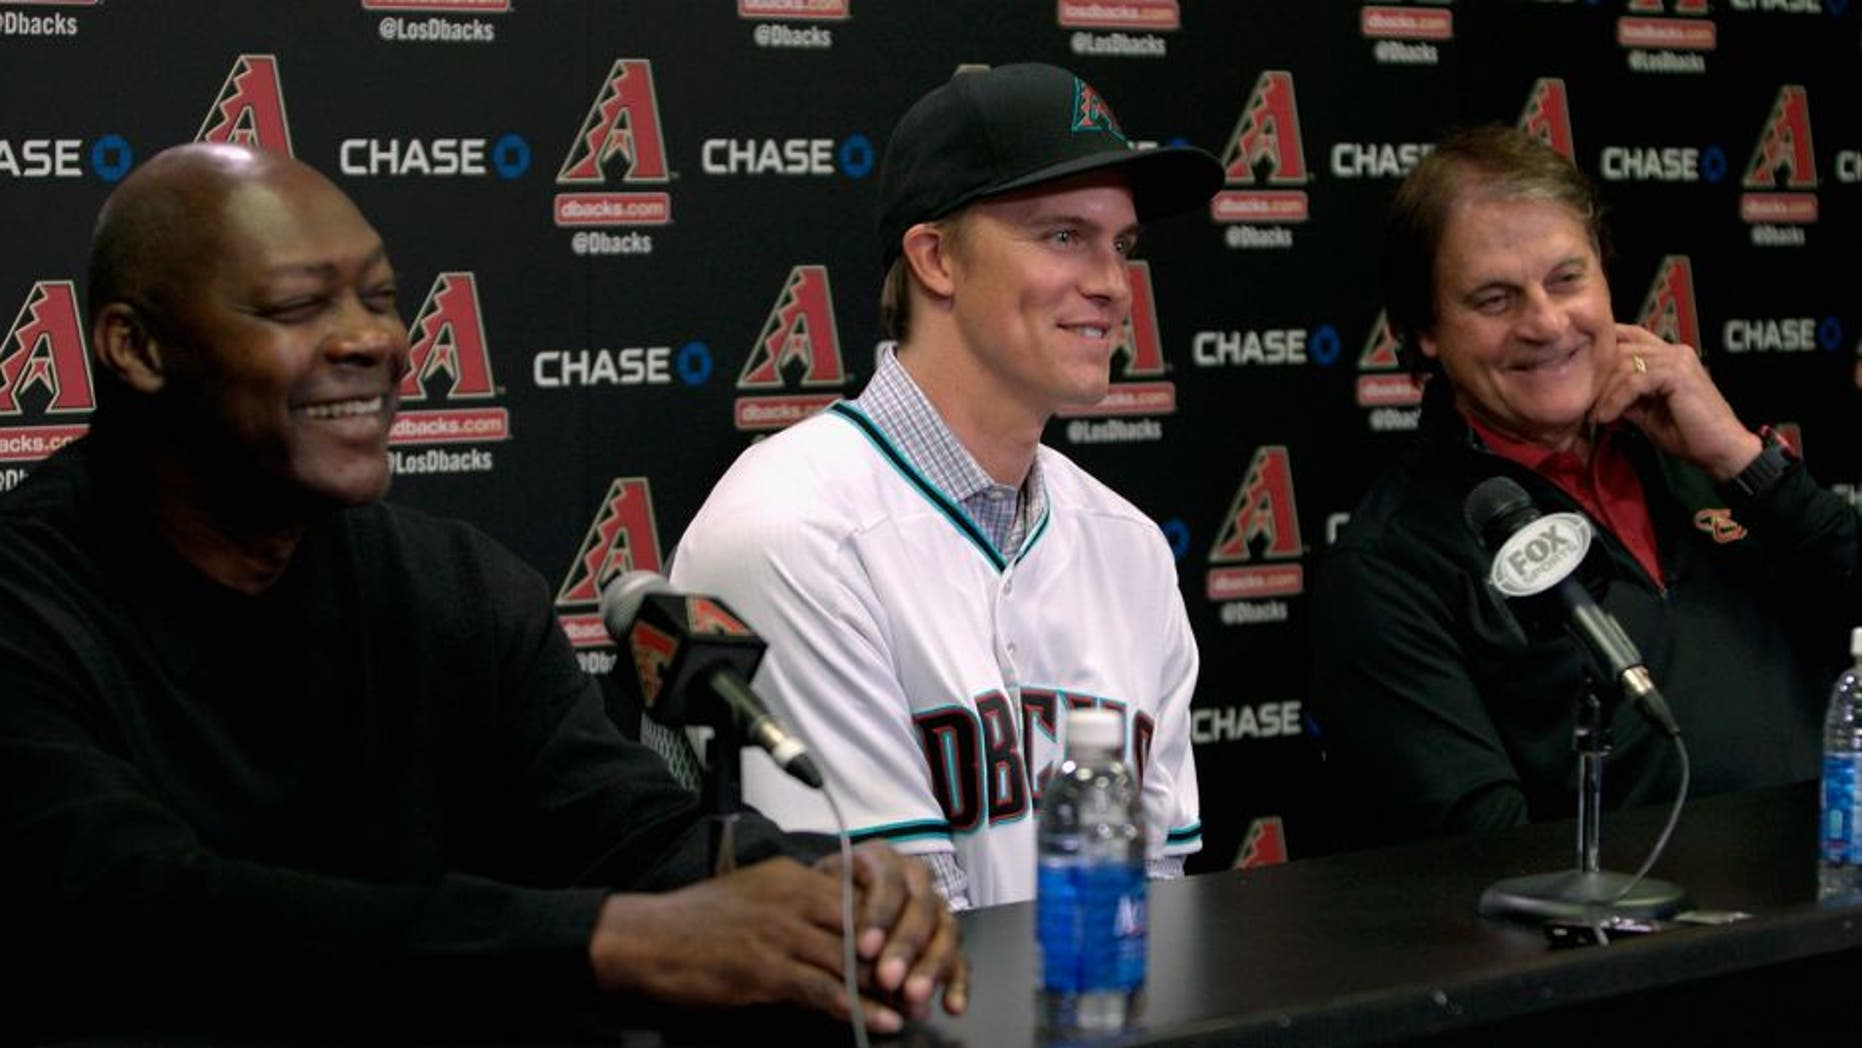 PHOENIX, AZ - DECEMBER 11: Free agent aquisition Zack Greinke of the Arizona Diamondbacks (C) laughs with Chief Baseball Officer Tony La Russa (R) and General Manager Dave Stewart during a press conference at Chase Field on December 11, 2015 in Phoenix, Arizona. (Photo by Ralph Freso/Getty Images)